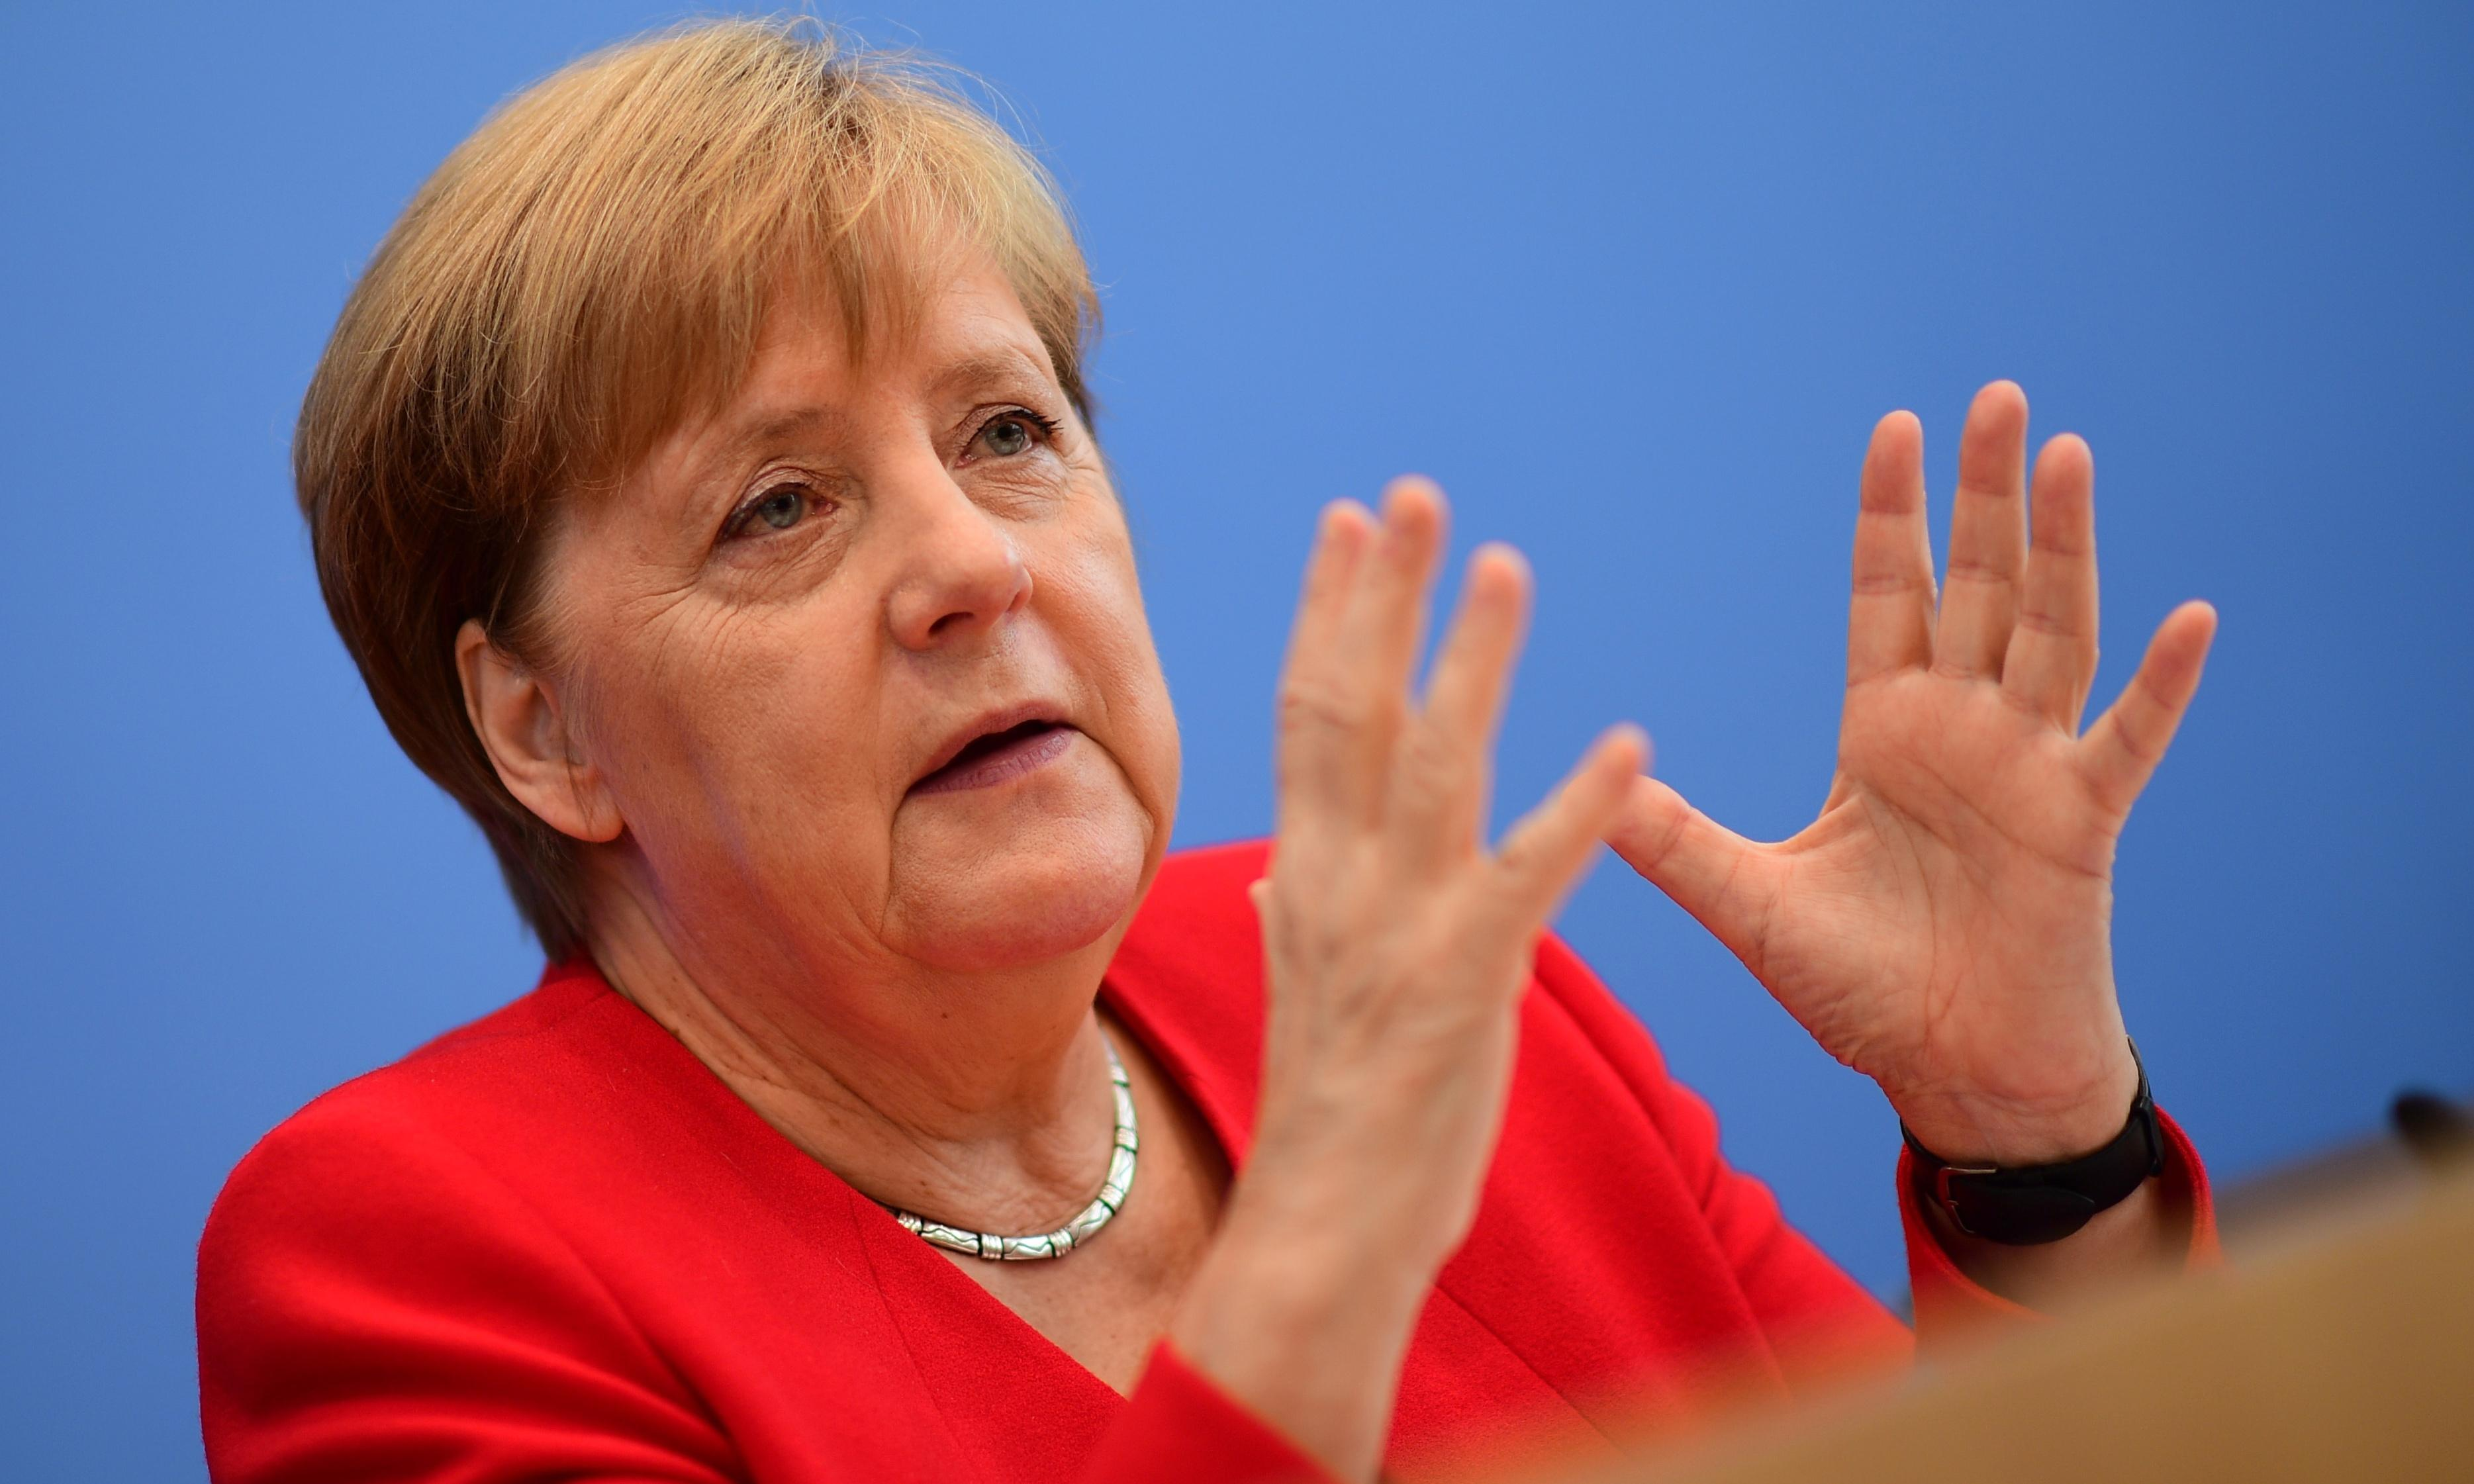 'I feel fine': Merkel dismisses health fears after shaking bouts